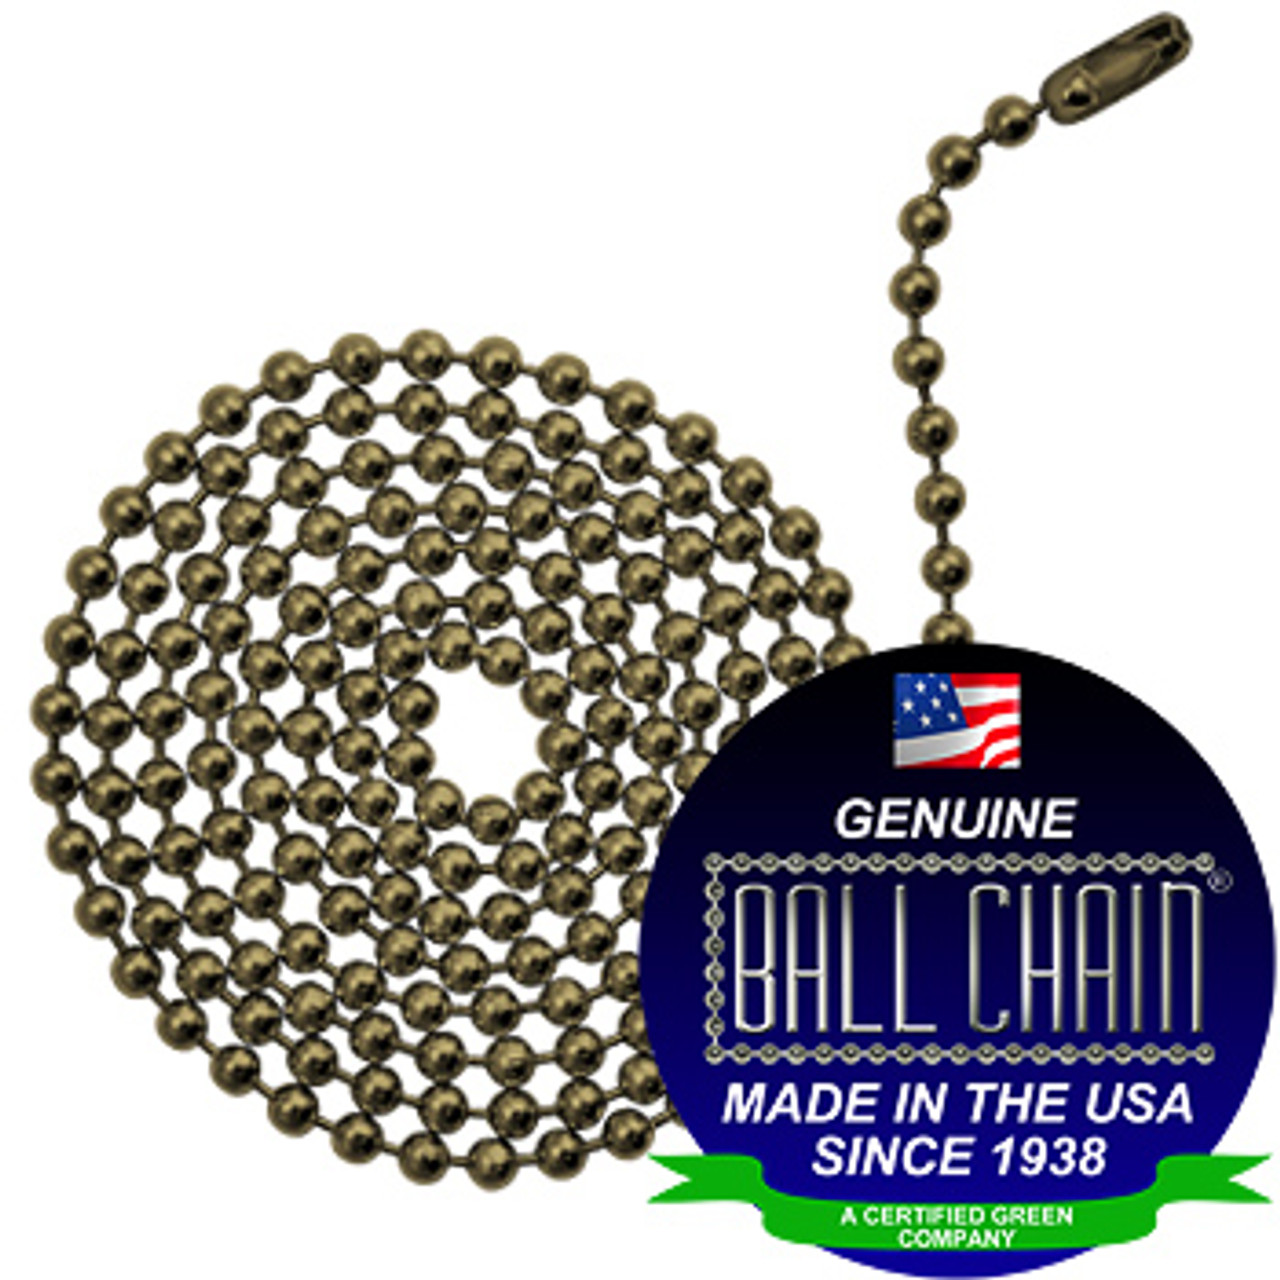 #6 Ball Chains Pre-Cut Three Foot Length Antique Brown